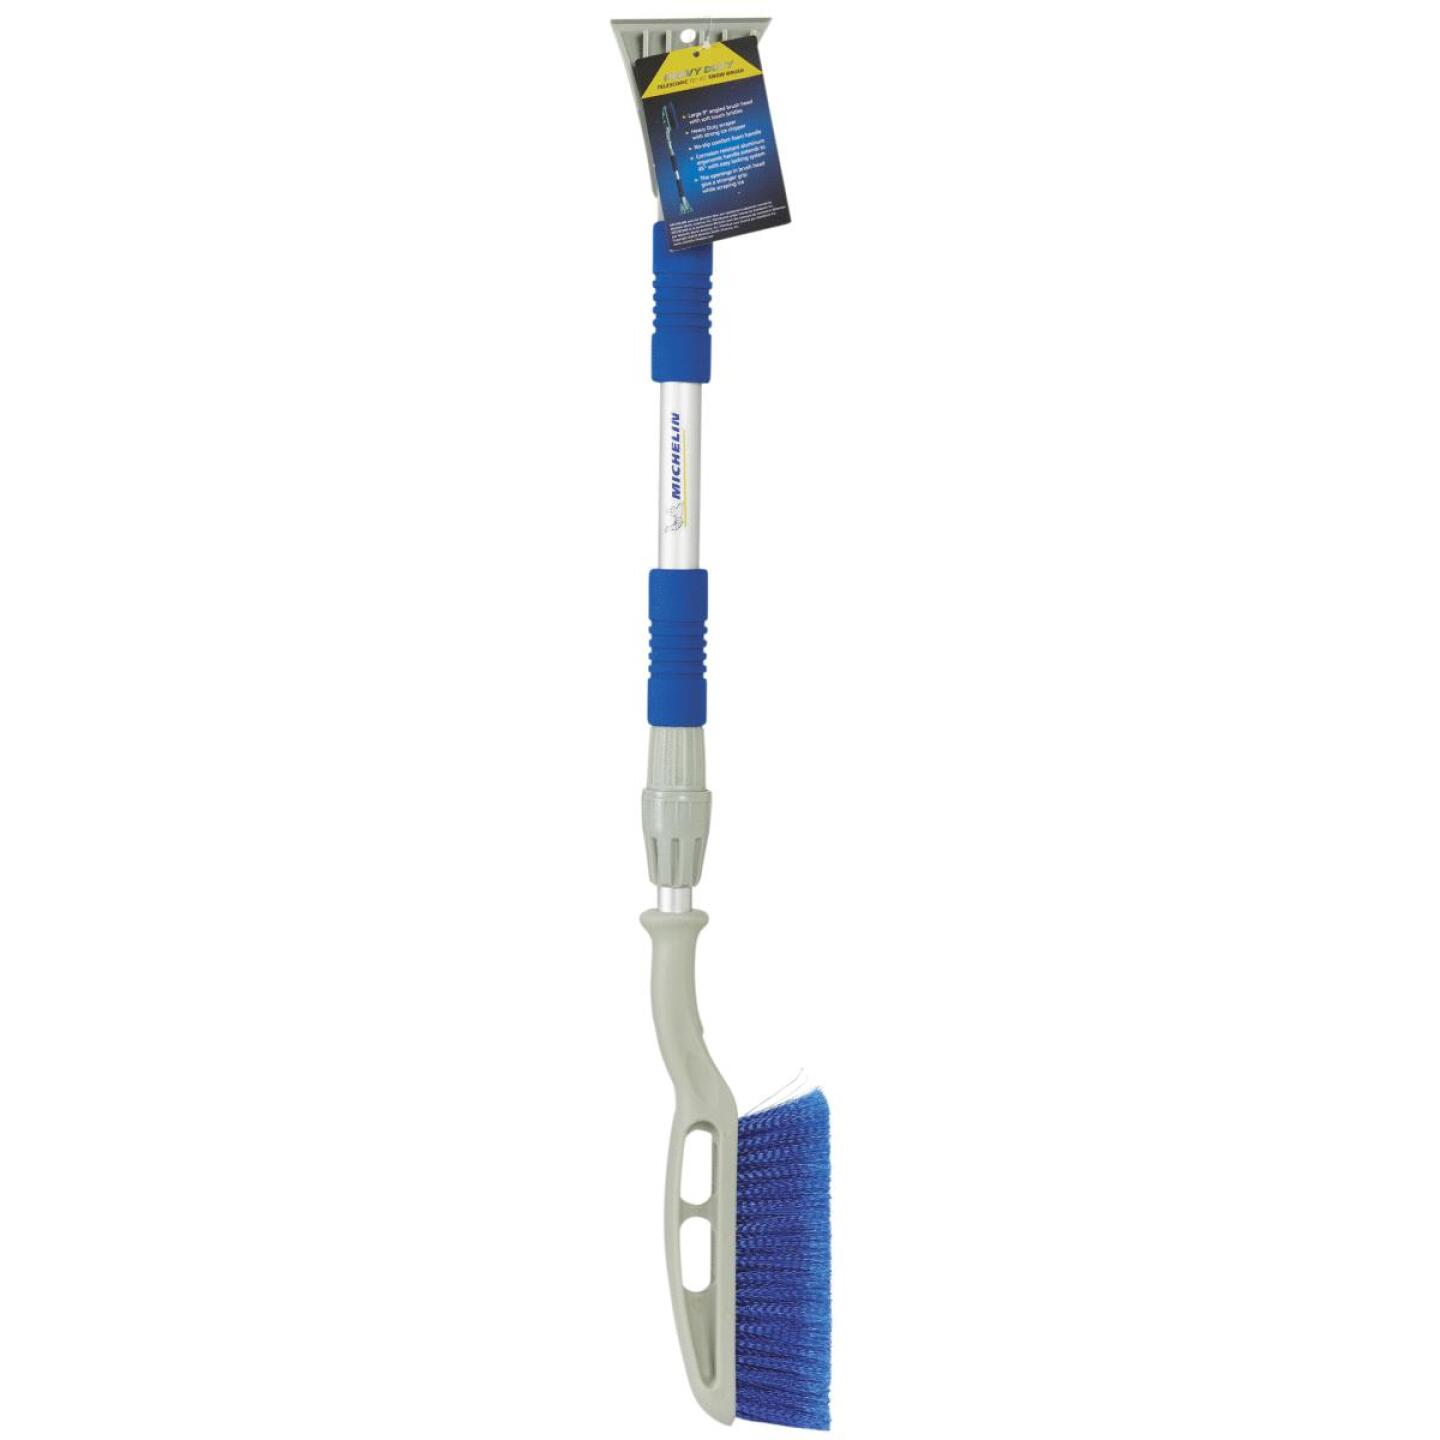 Michelin 45 In. Steel Heavy-Duty Telescopic Snowbrush with Ice Scraper Image 2